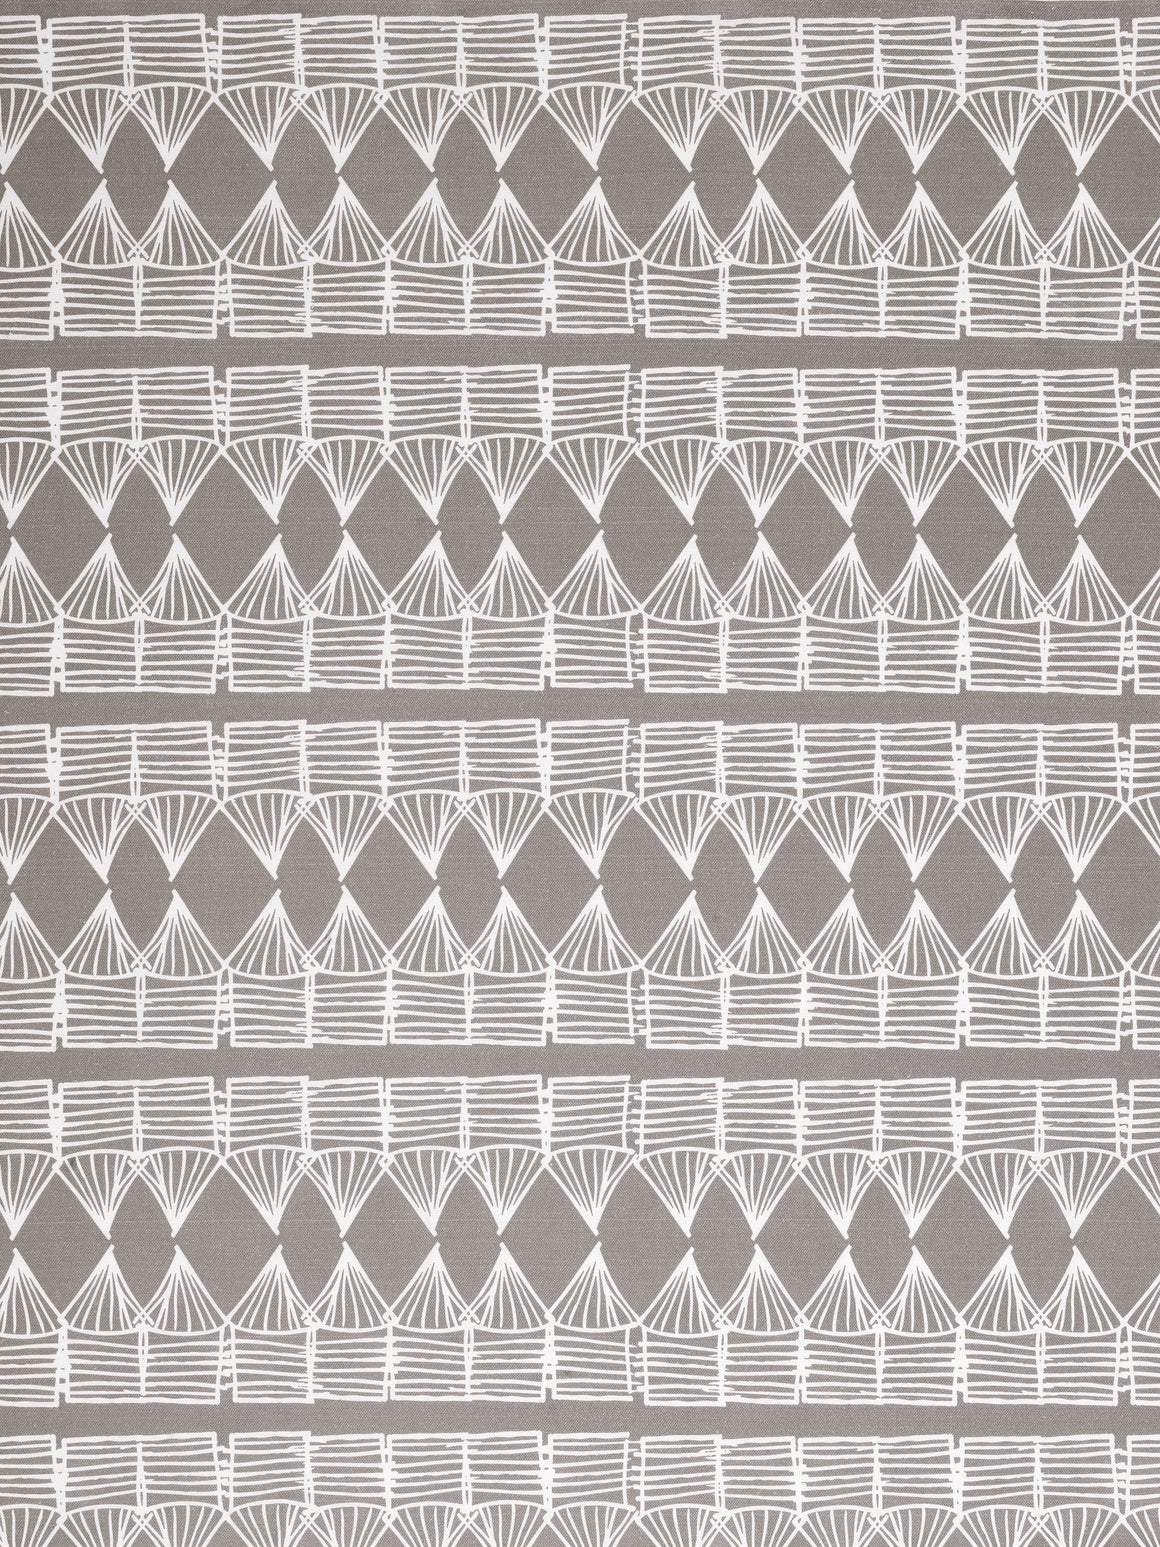 Tiki Huts Pattern Cotton Linen Fabric by the meter in Light Dove Grey